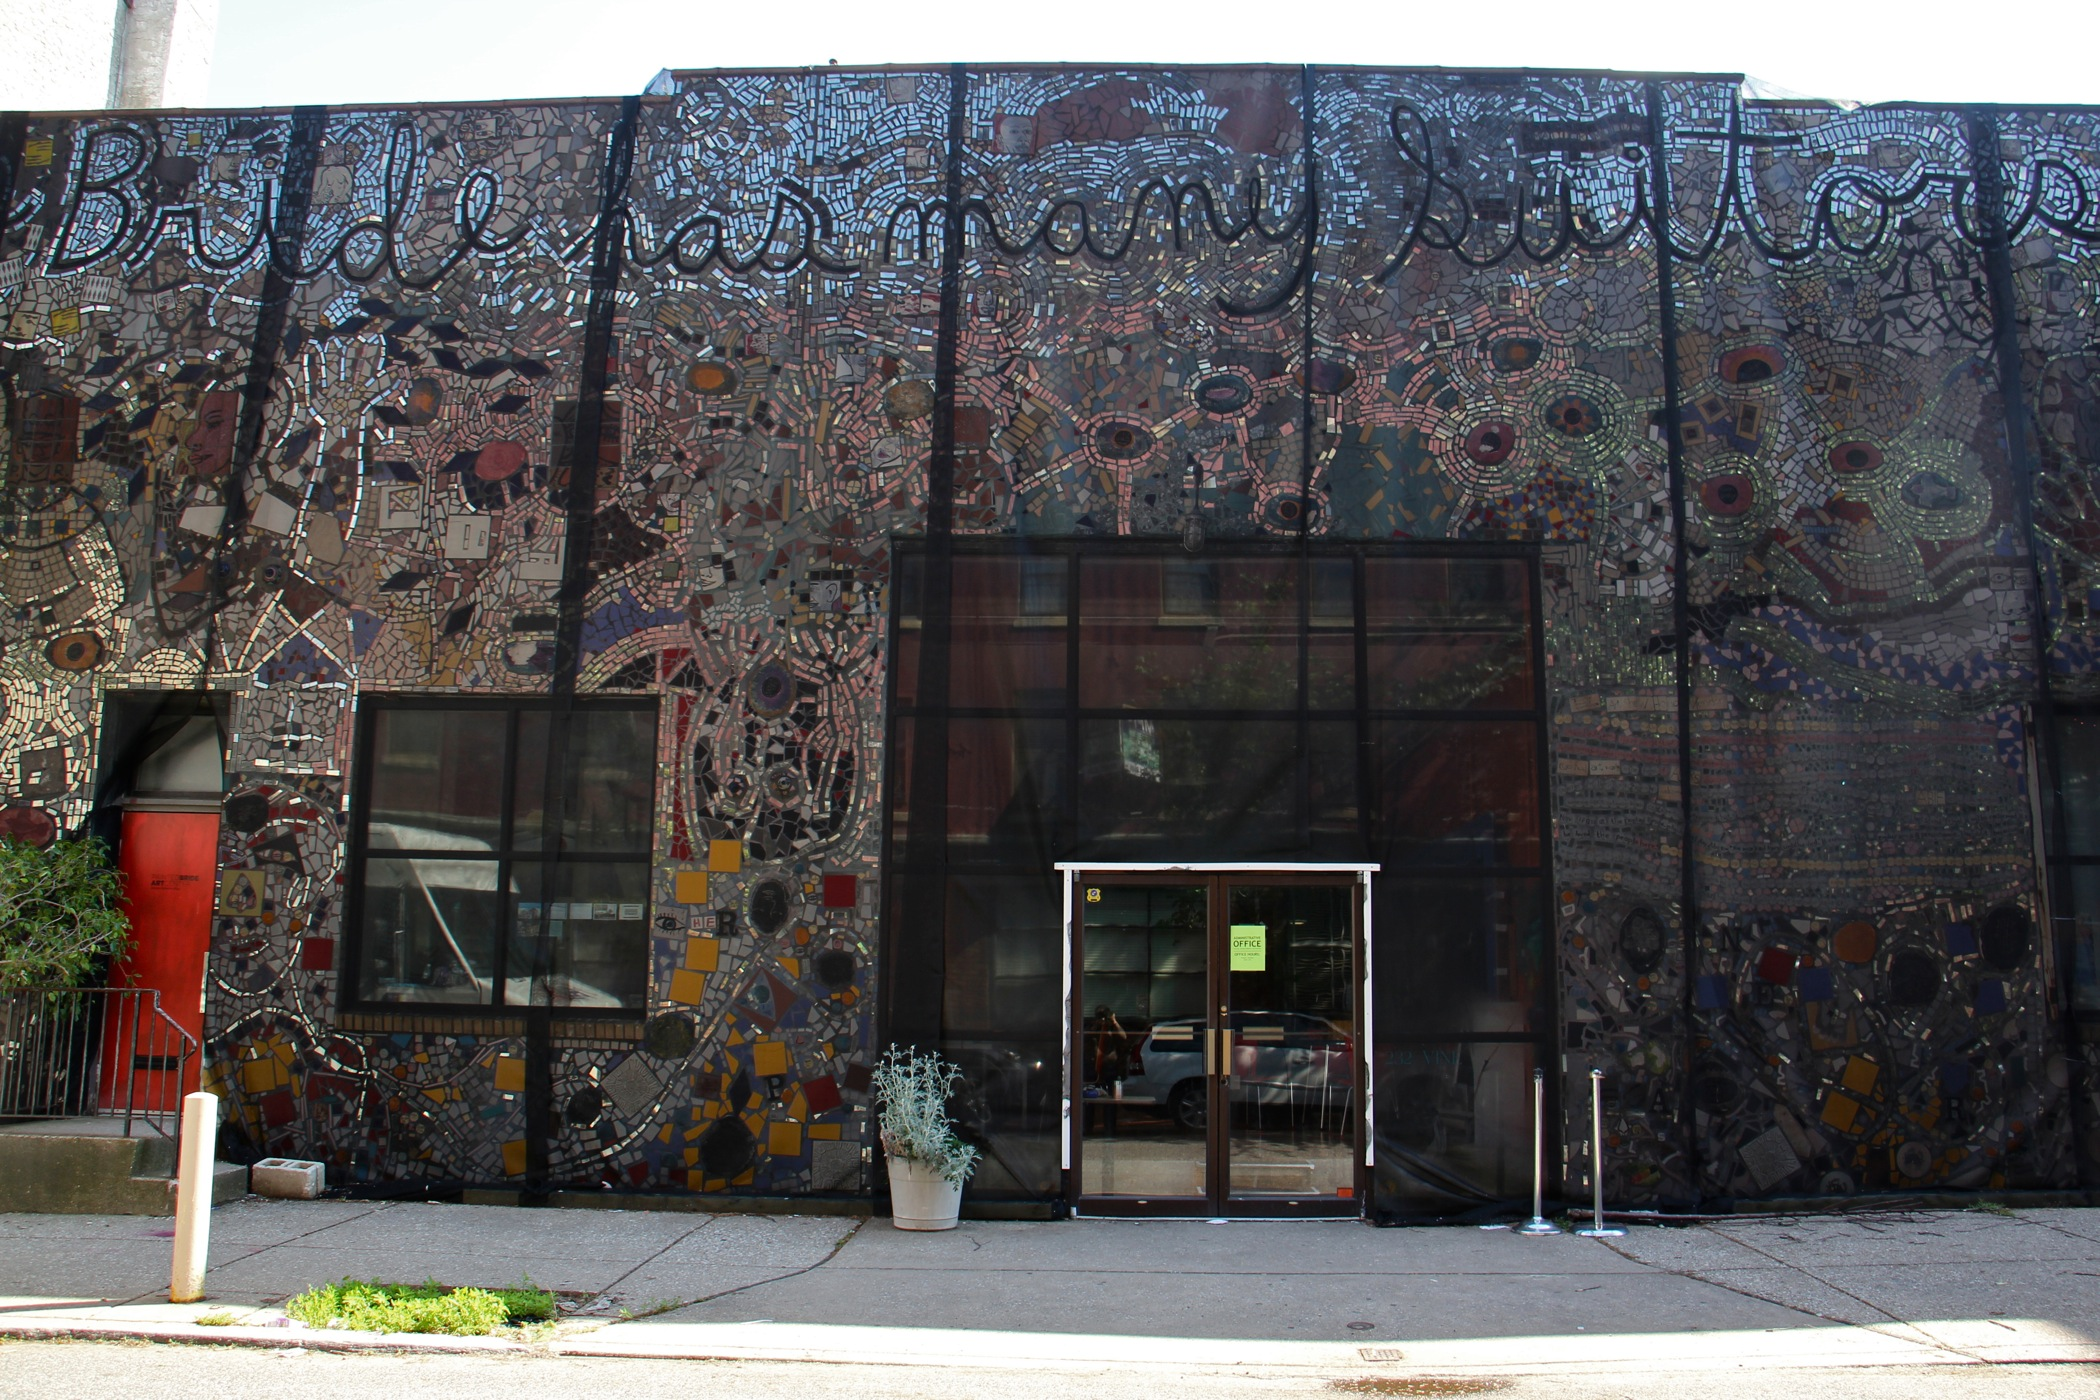 Painted Bride goes to court to sell its distinctive building